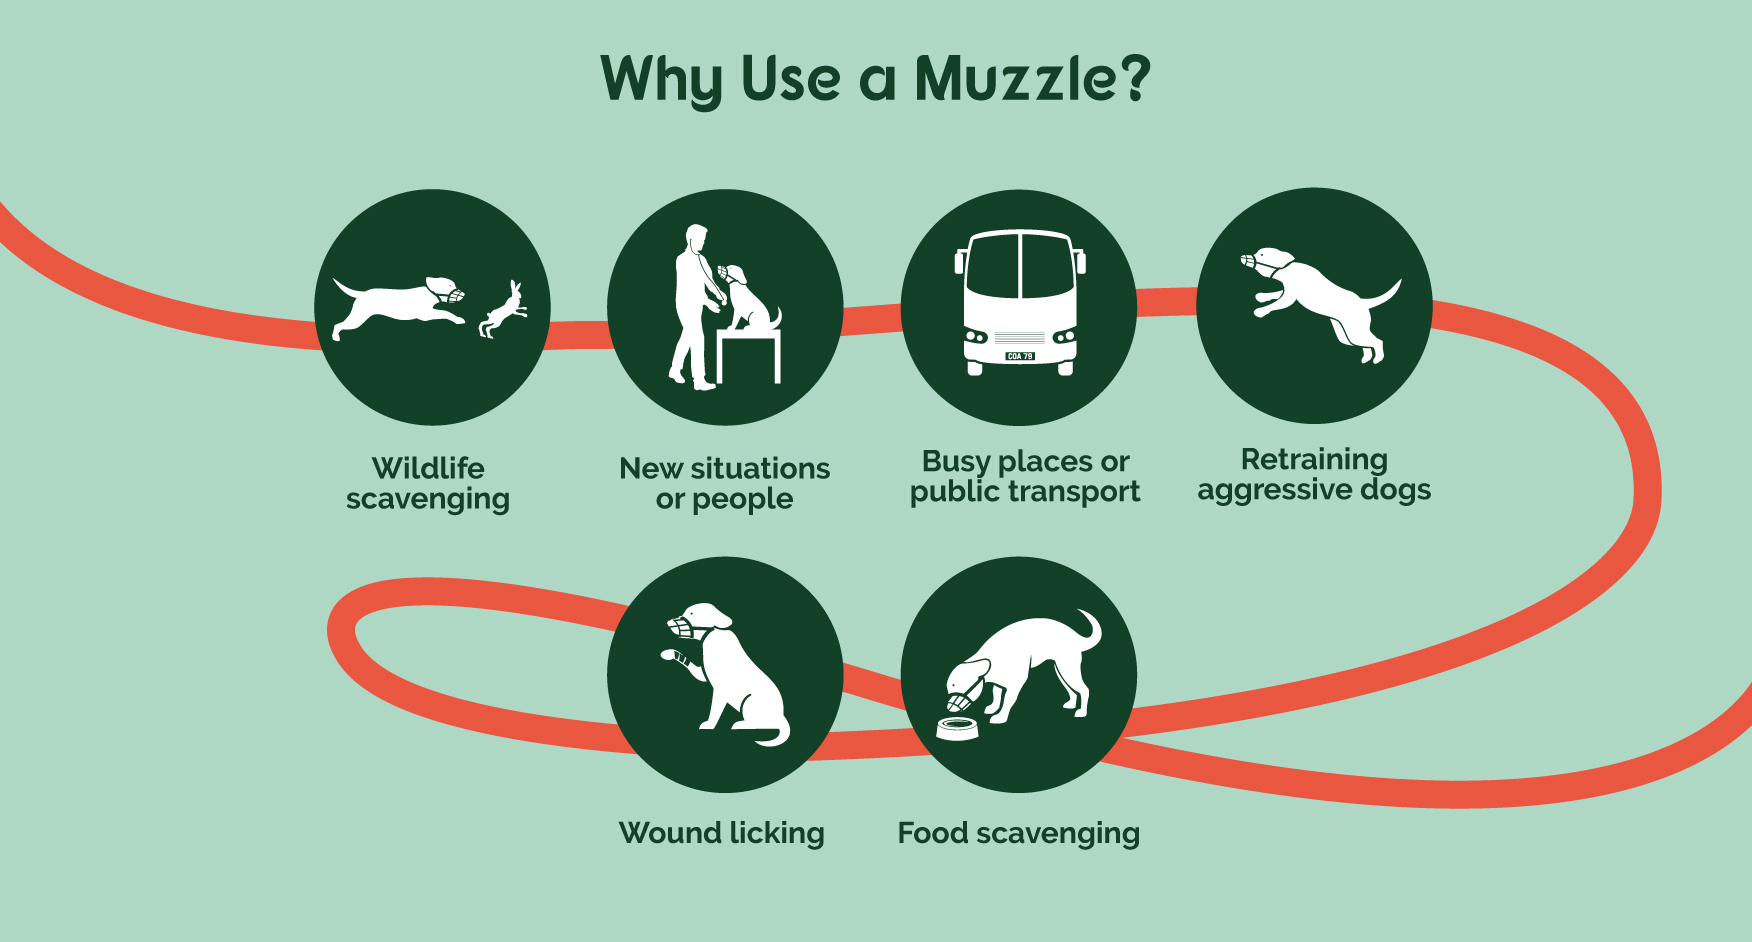 guide telling customers why they might need a muzzle